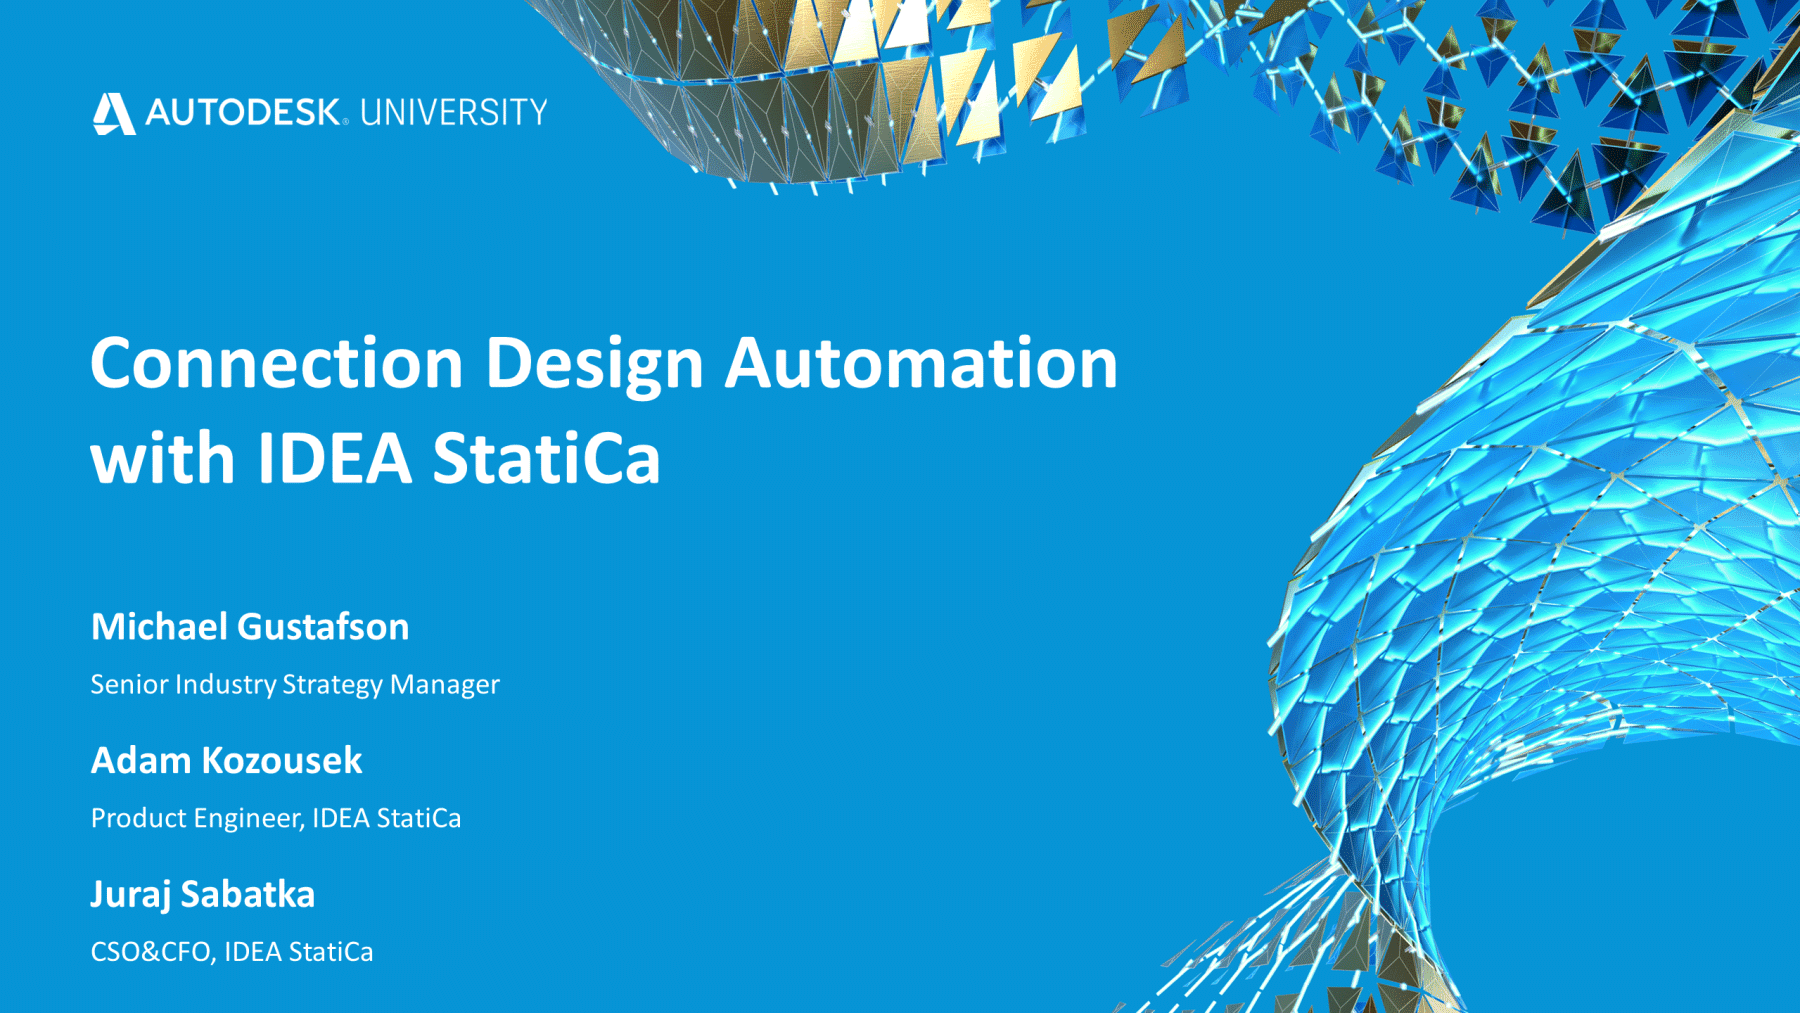 Connection Design Automation with IDEA StatiCa